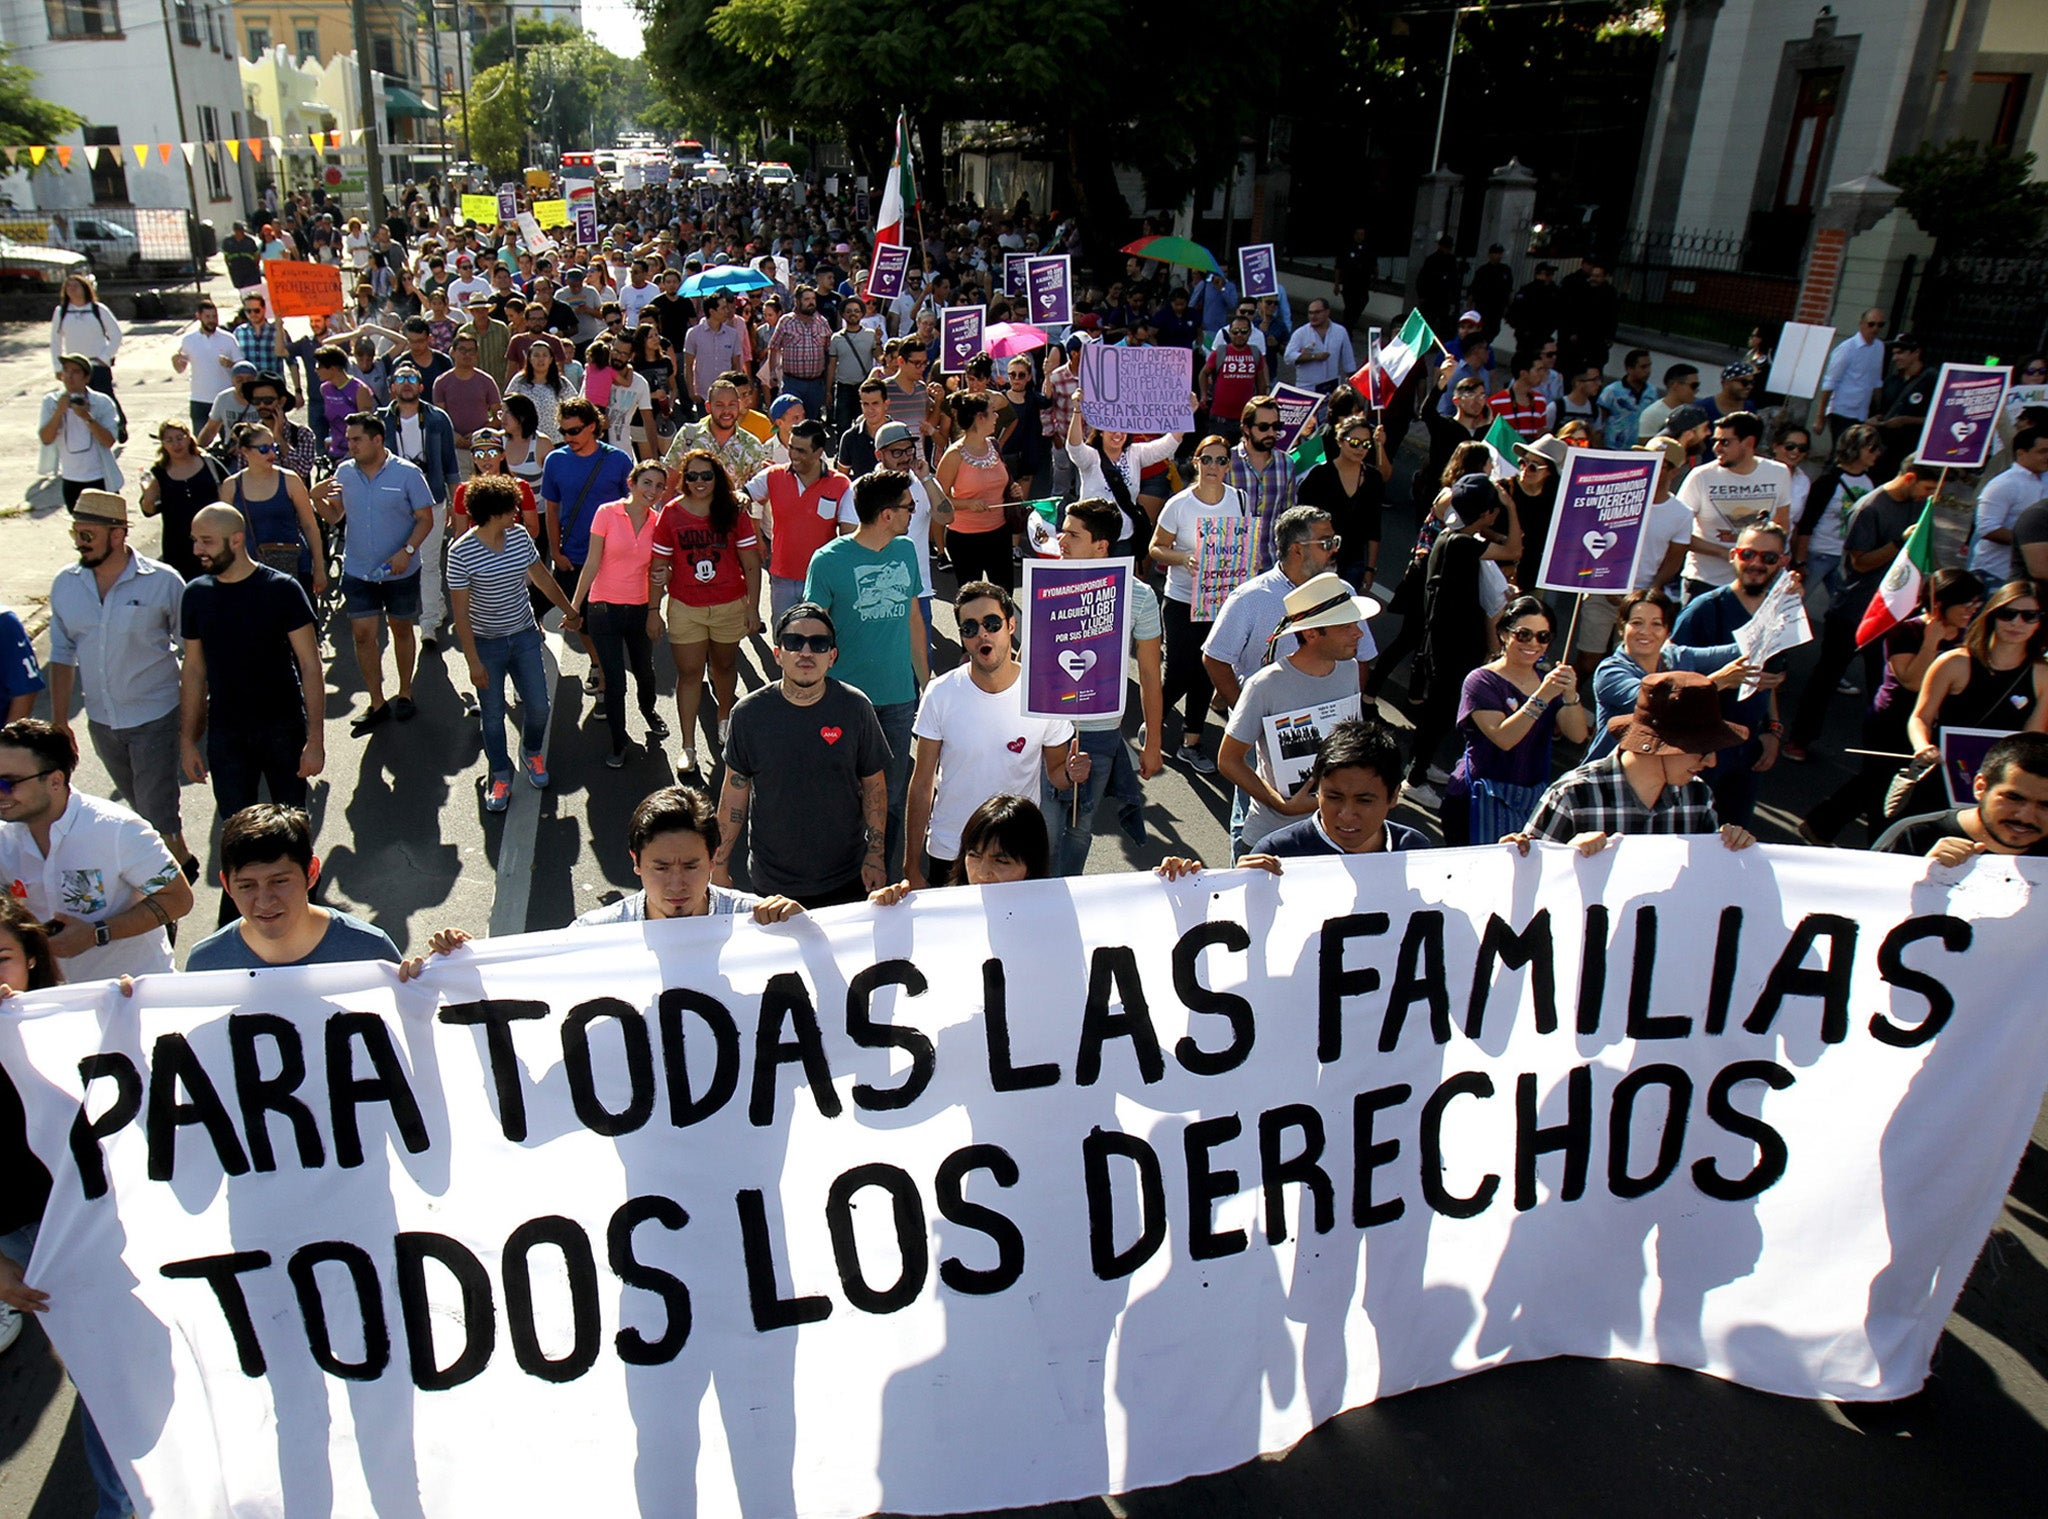 Mexican boy stands up to 11,000 anti-LGBT protesters in